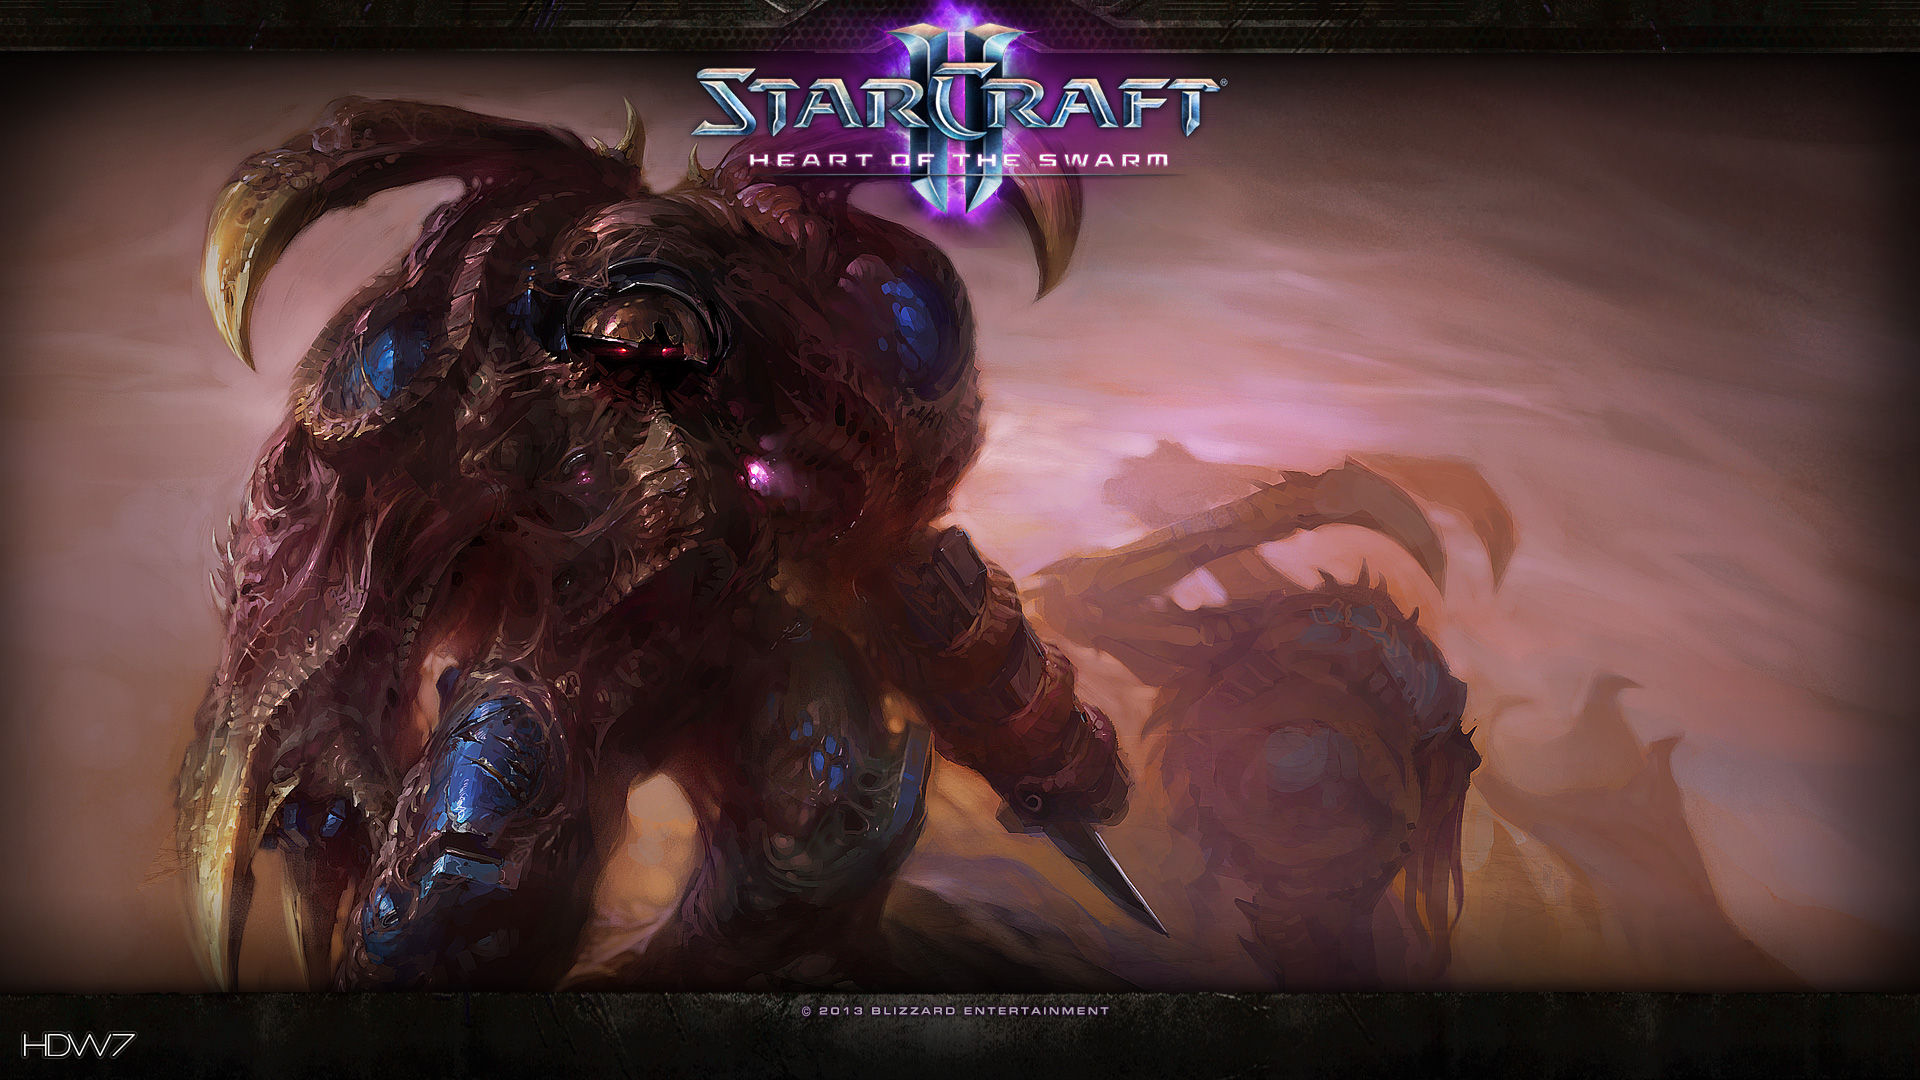 Starcraft 2 Heart Of The Swarm The Education Of Pfc Shane Widescreen Hd Wallpaper Hd Wallpaper Gallery 155